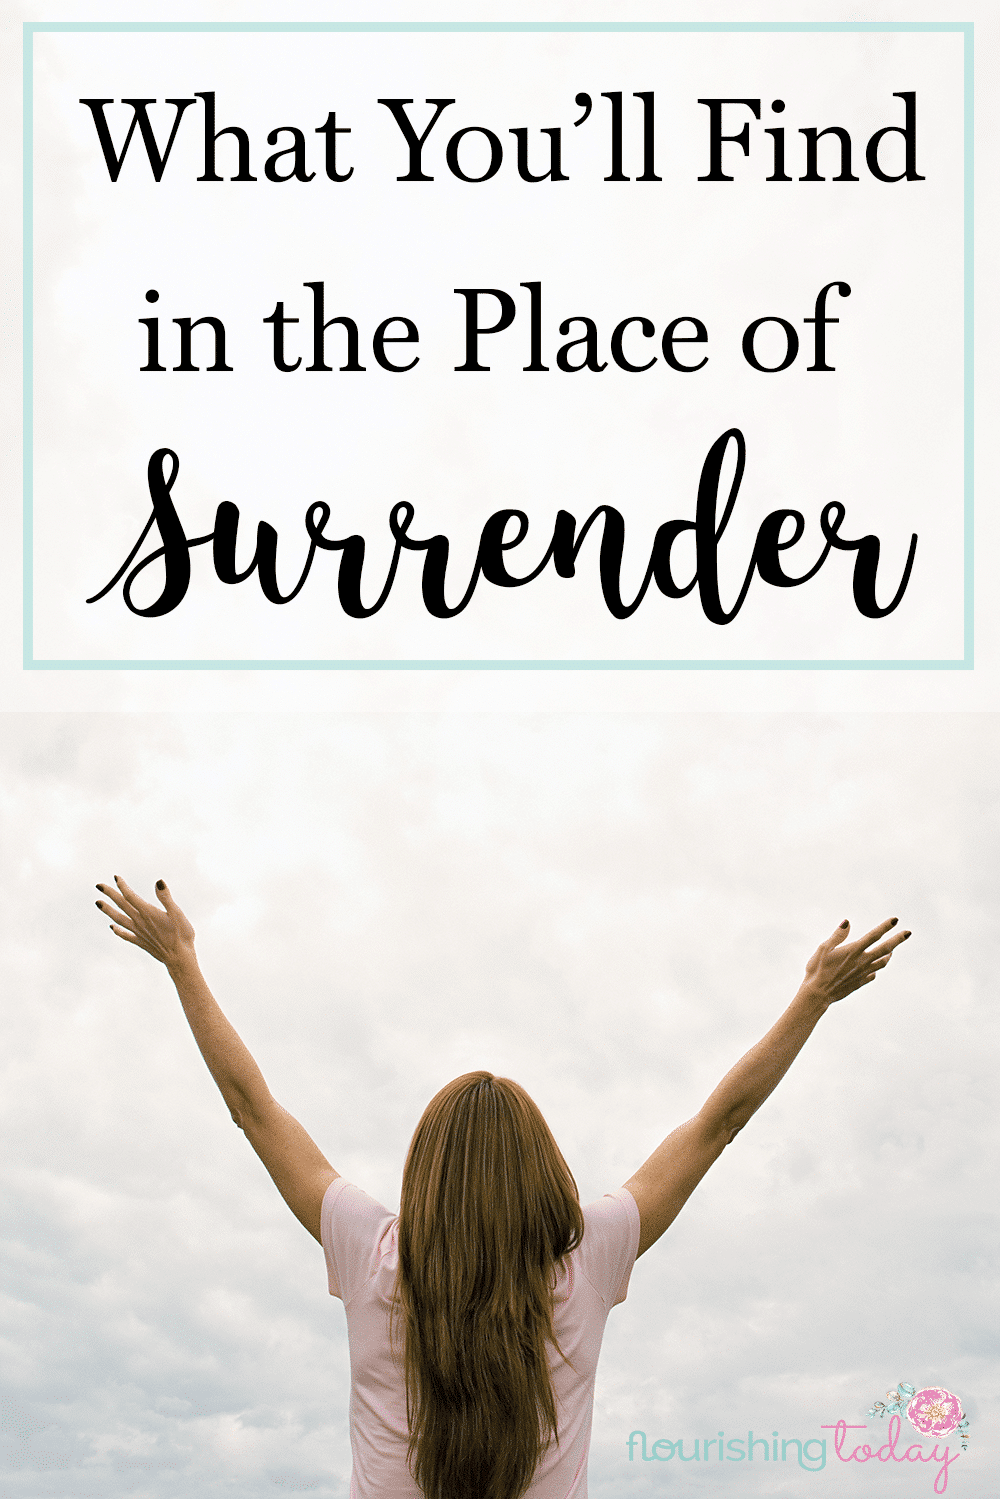 Are feeling stuck in the middle of a mess? Laying it all down can be tough, but when we do- when we surrender to God, we find peace.